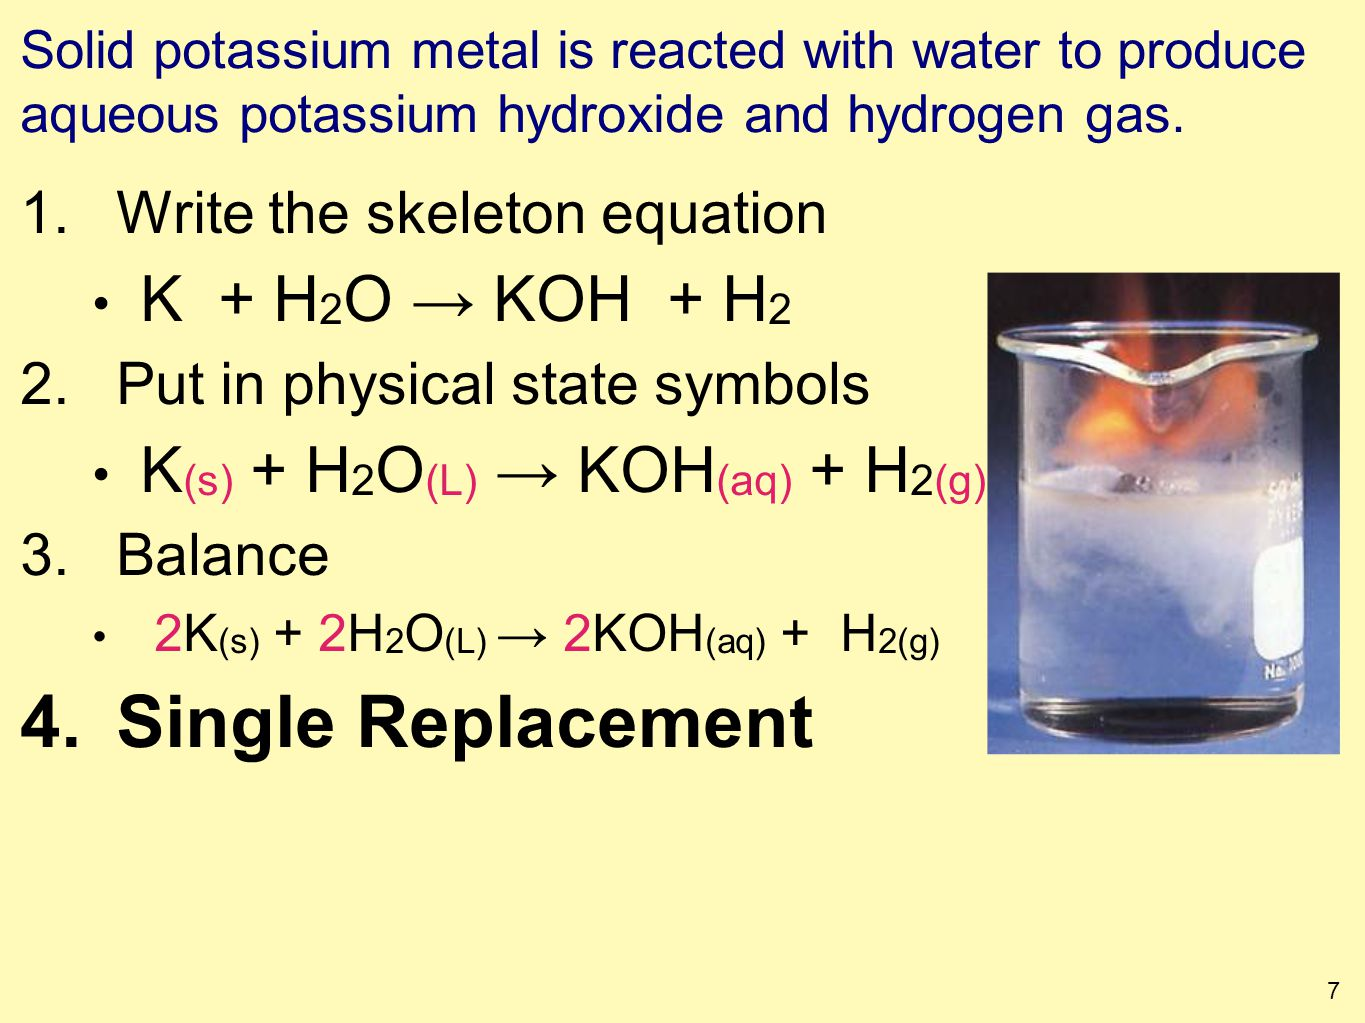 1 writing chemical equations to symbolize chemical reactions 7 solid potassium metal is reacted with water to produce aqueous potassium hydroxide and hydrogen gas buycottarizona